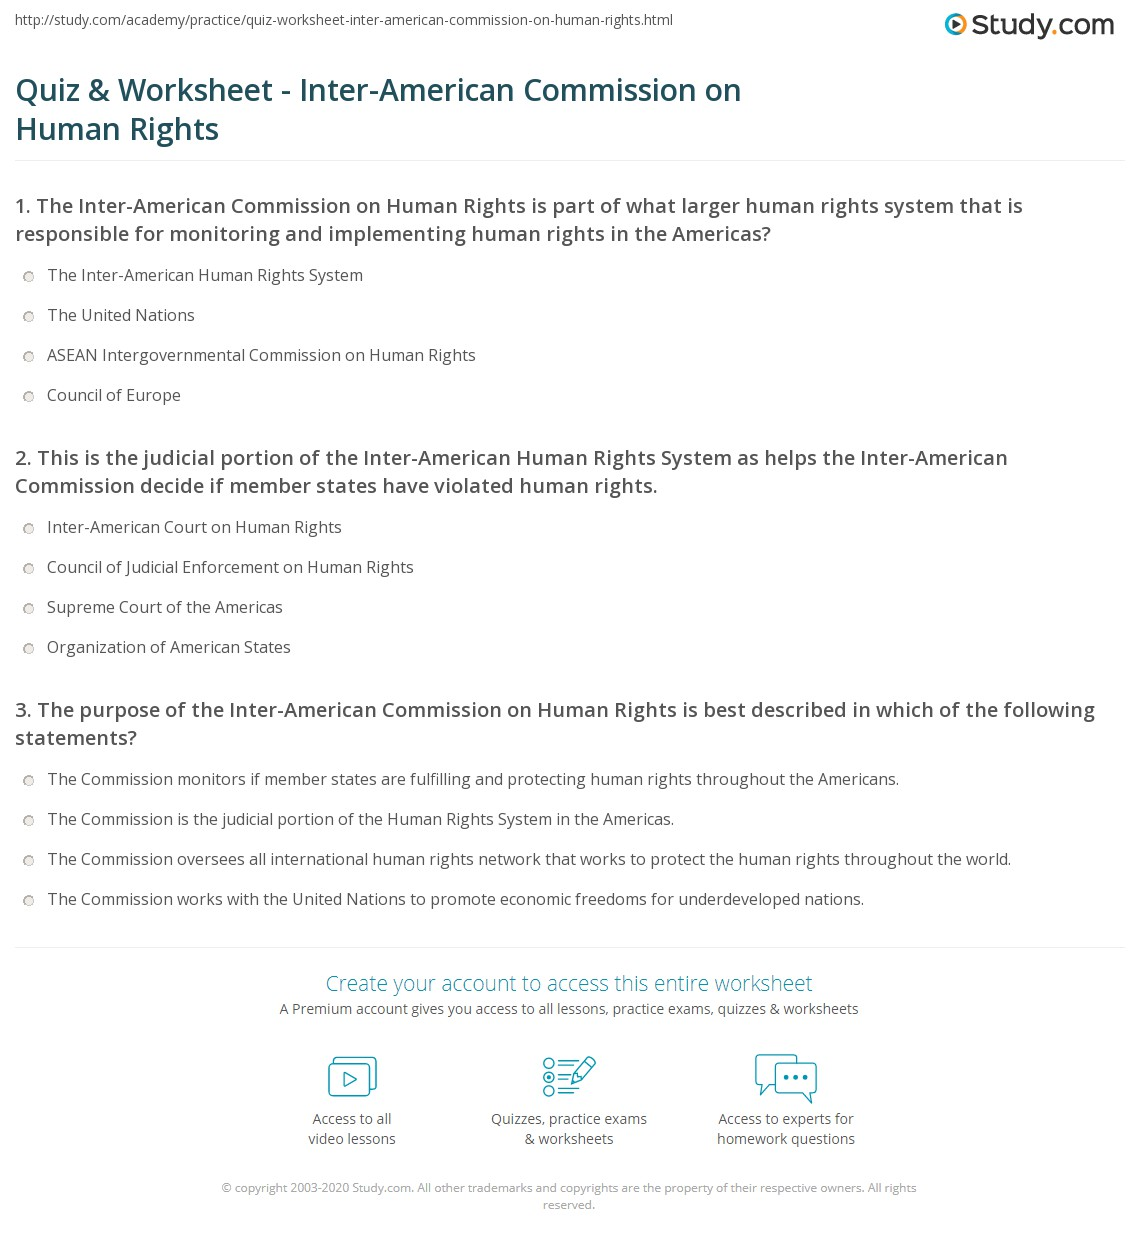 quiz worksheet inter american commission on human rights. Black Bedroom Furniture Sets. Home Design Ideas